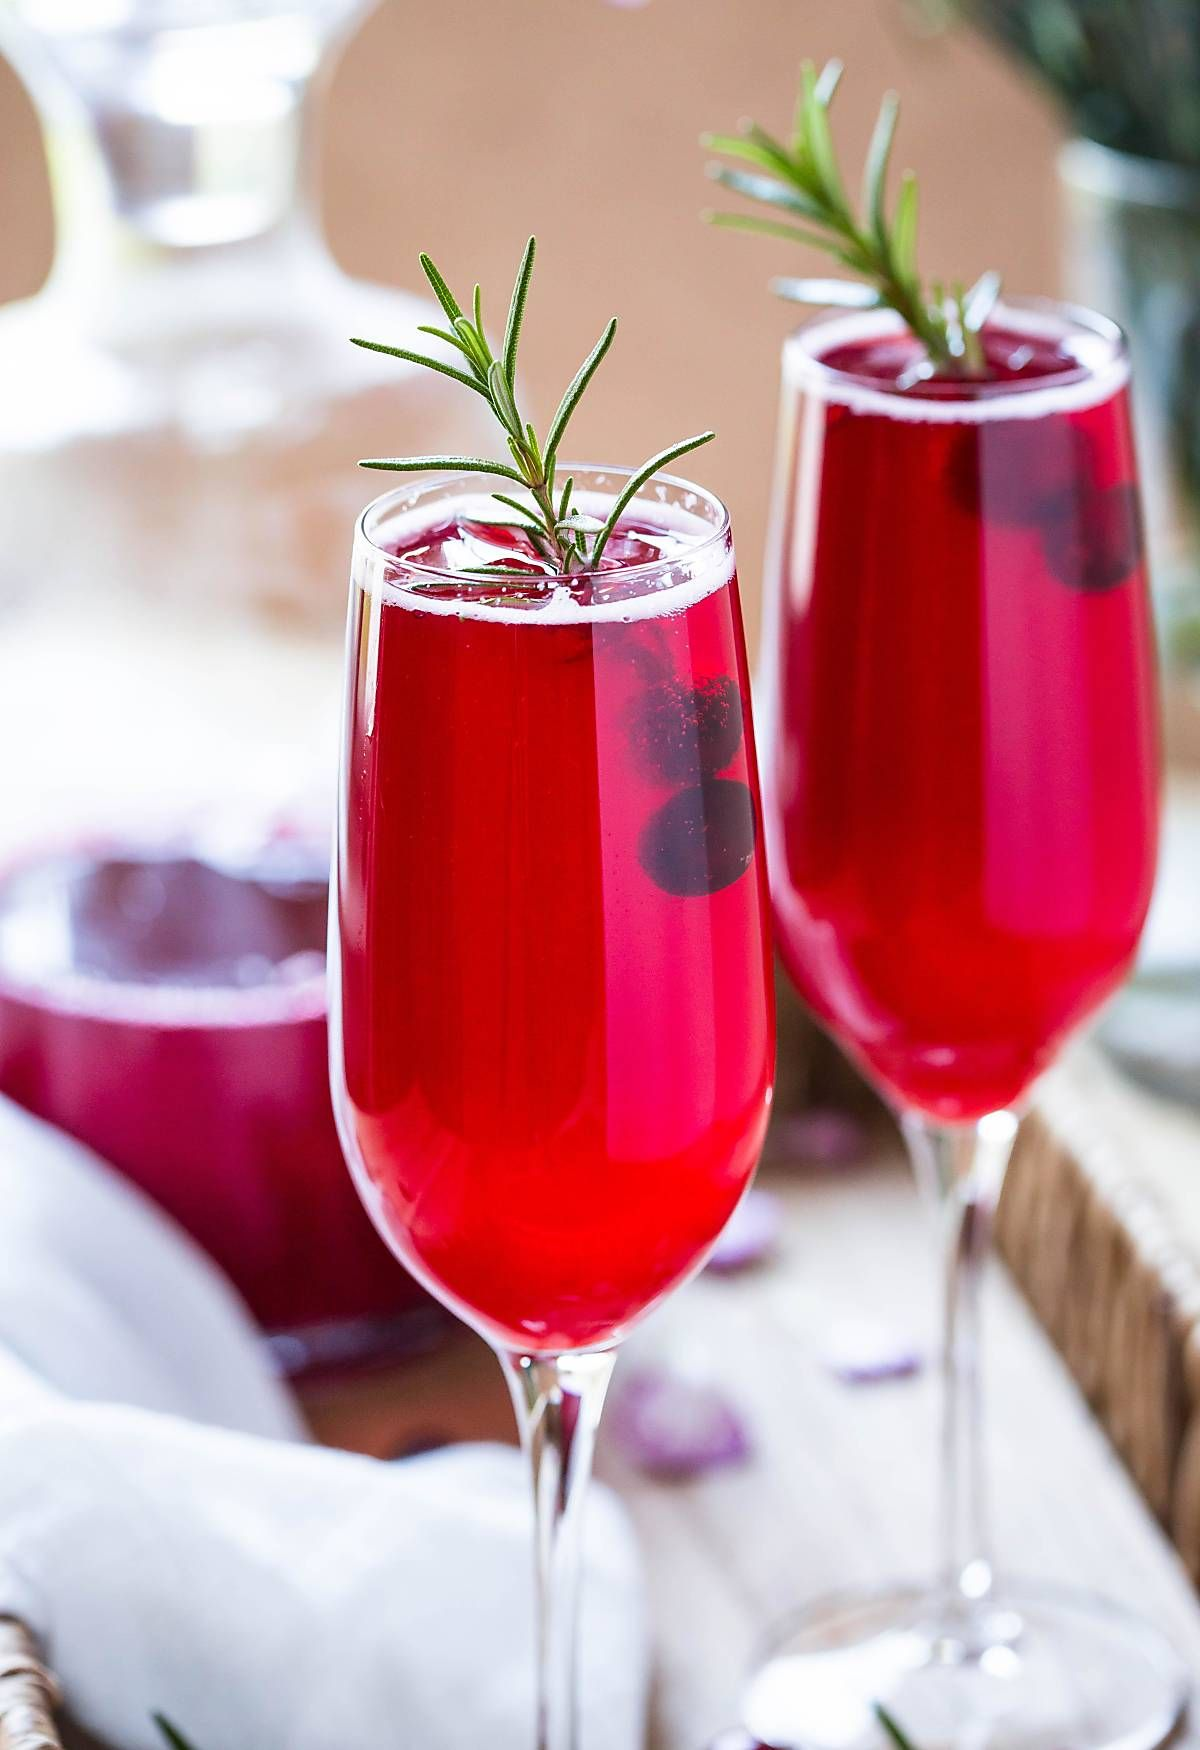 Healthy Festive Cranberry Mimosa Recipe Naturally Sweetened Recipe Cranberry Mimosa Recipe Cranberry Mimosa Cranberry Juice Benefits